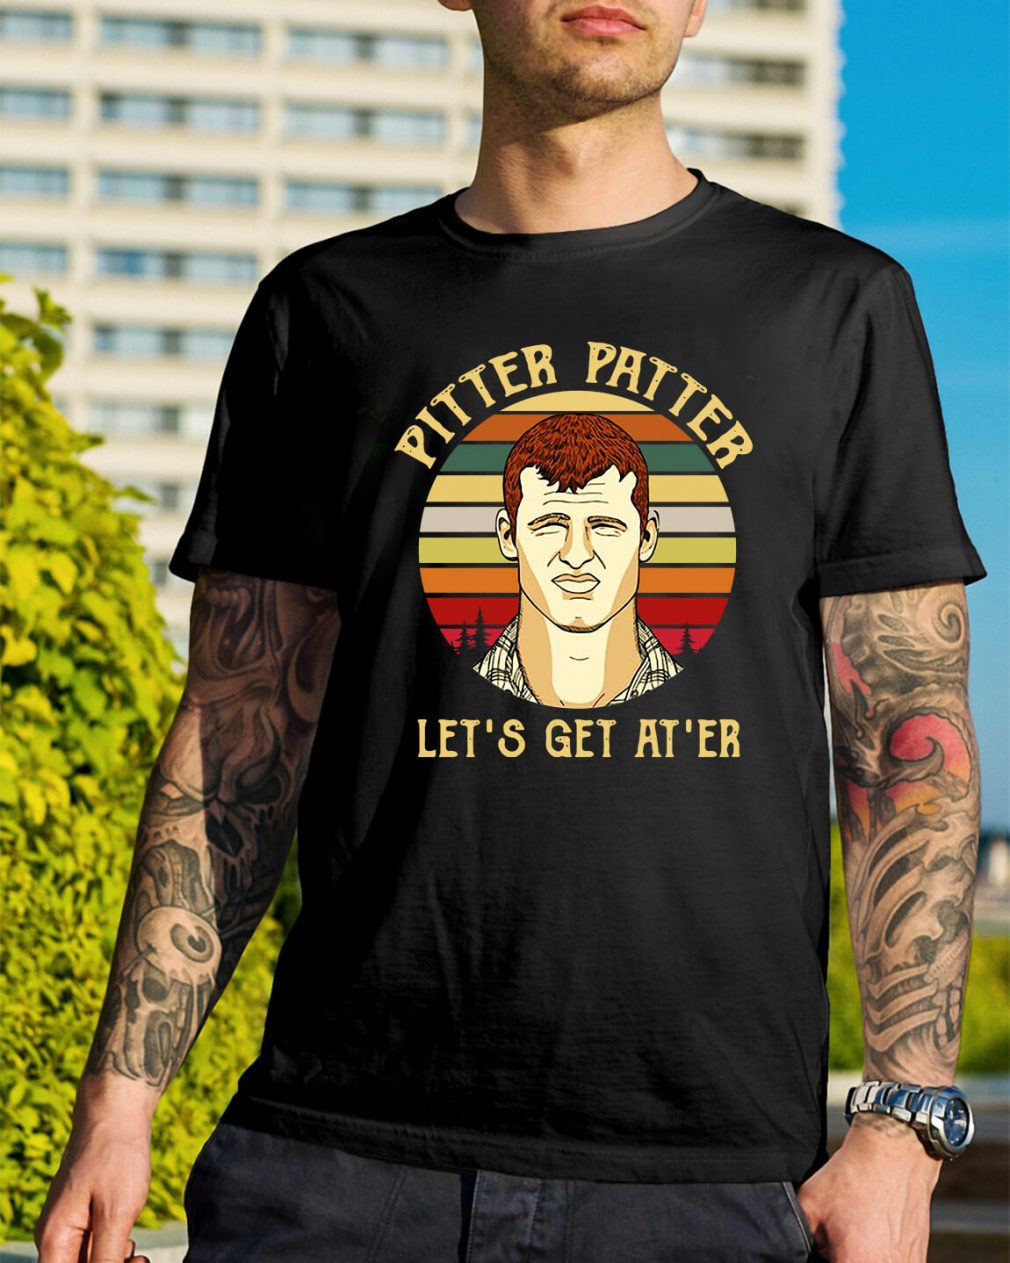 Sunset Pitter Patter let's get at'er shirt